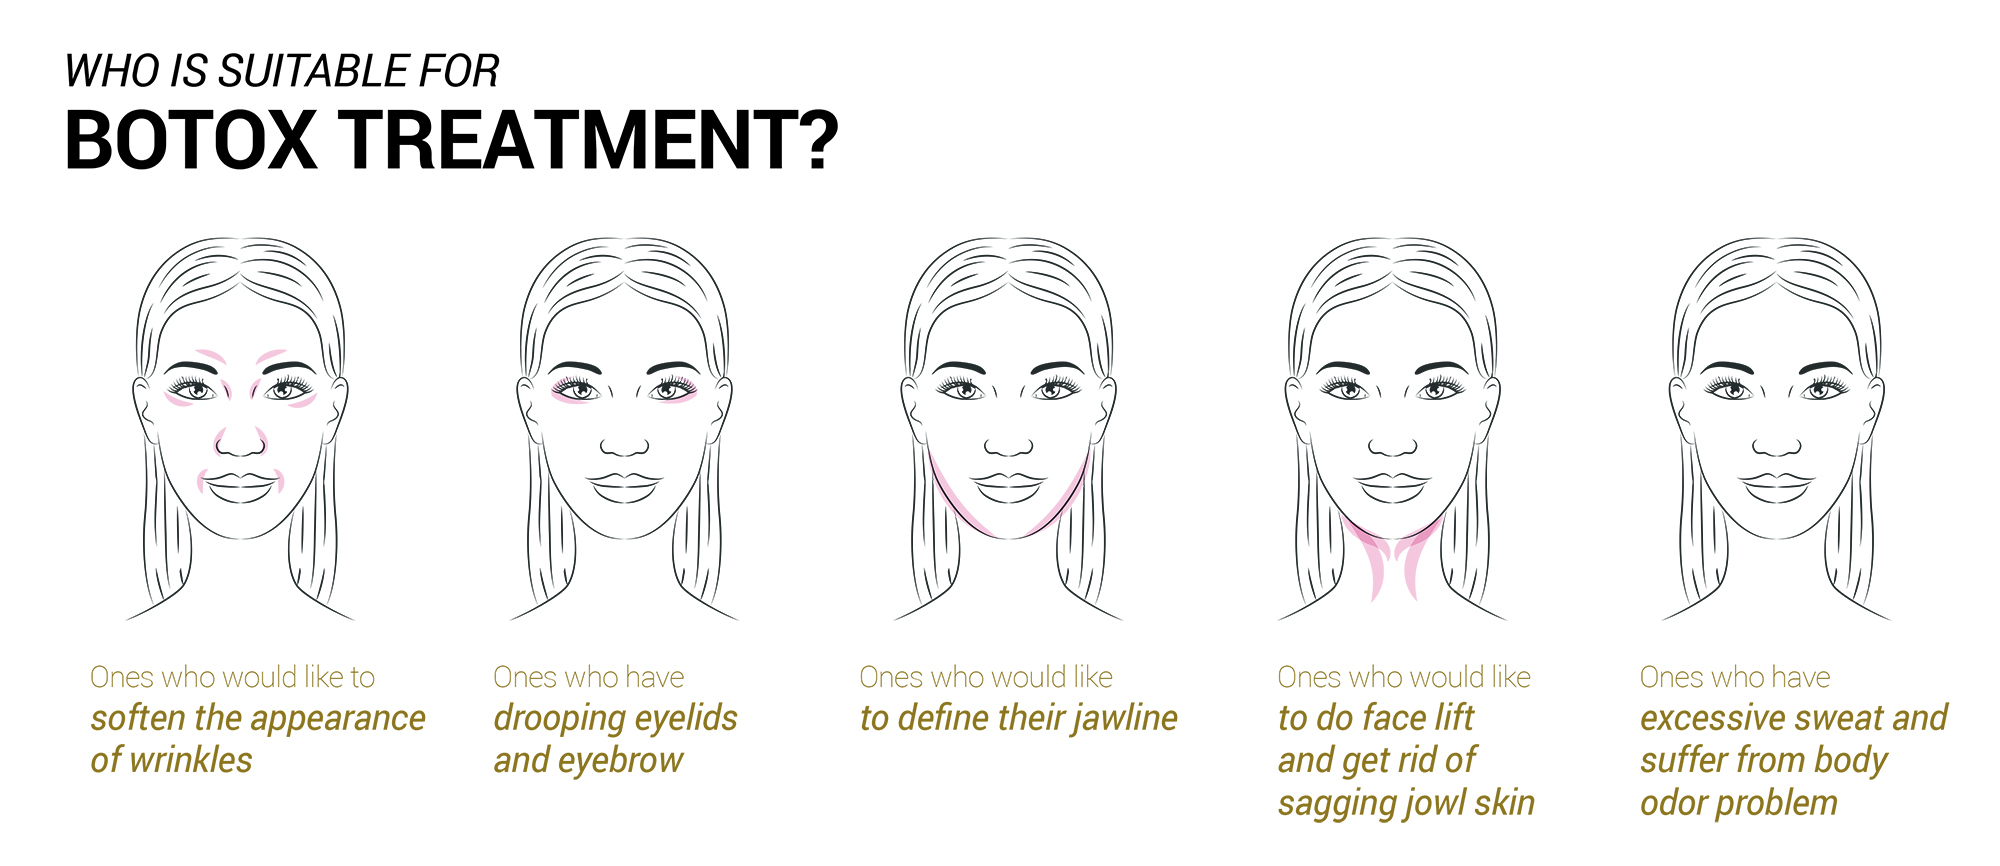 Who is Suitable for Botox Treatment